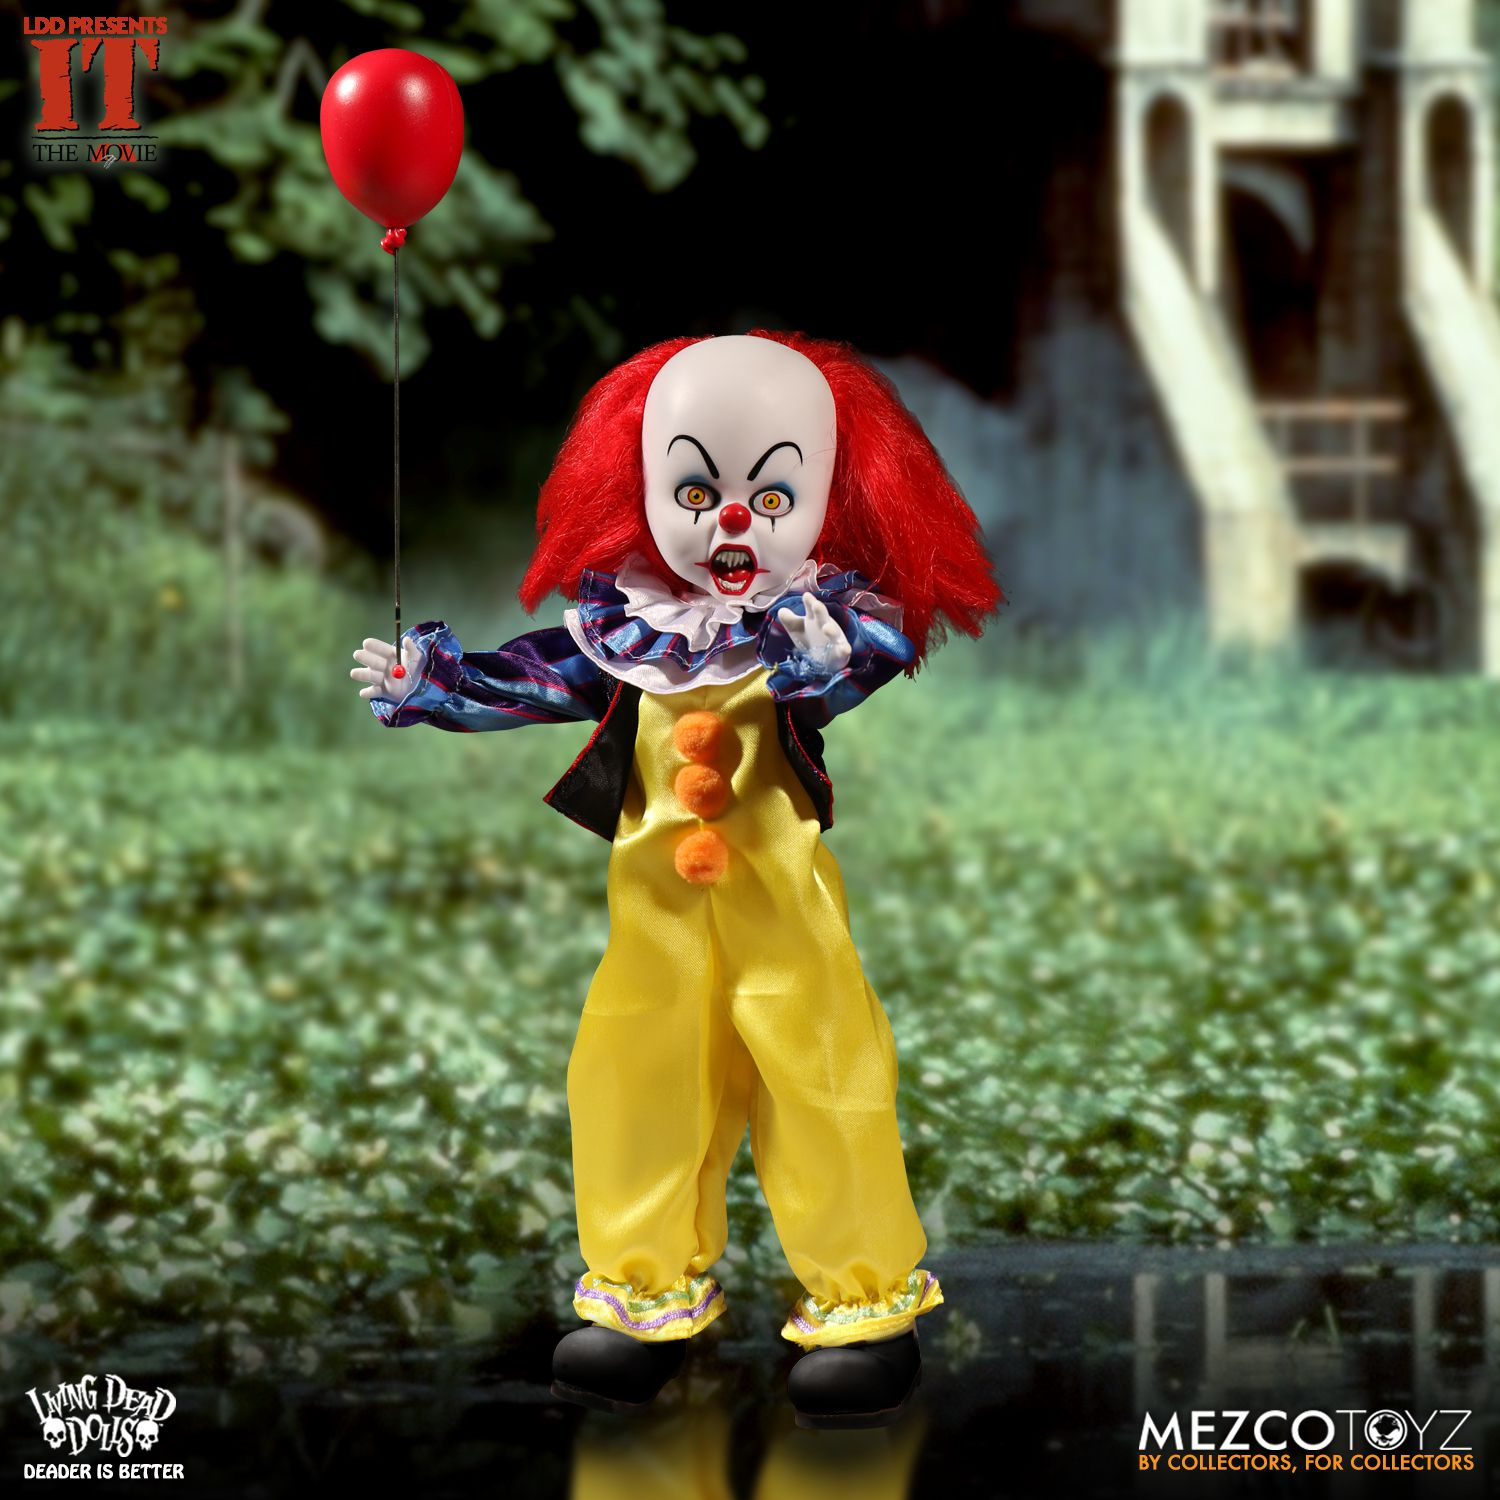 Mezco Pennywise Living Dead Doll